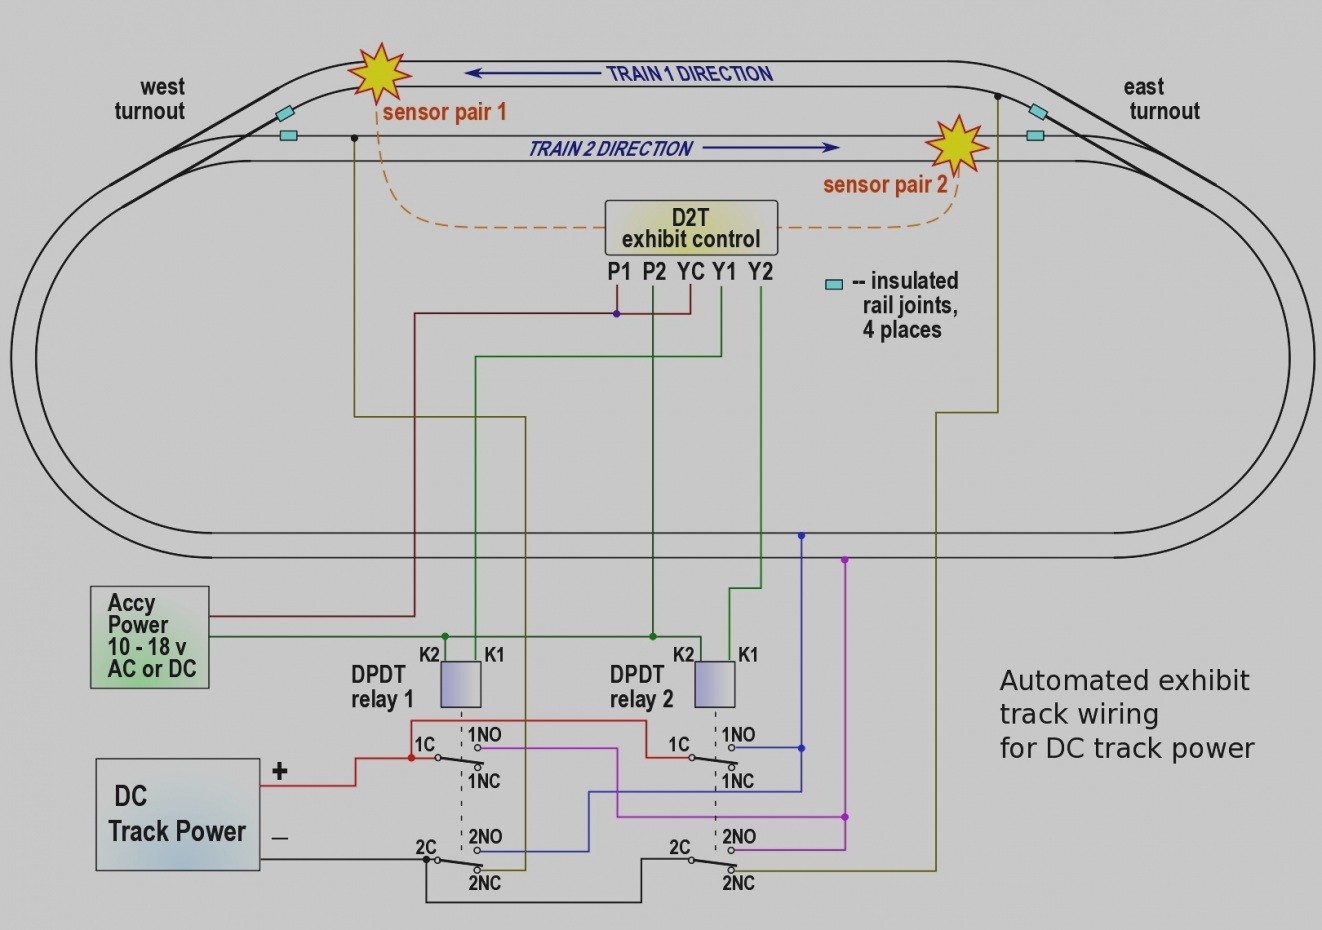 hight resolution of track plan wiring wiring diagram schematic plans for train track wiring